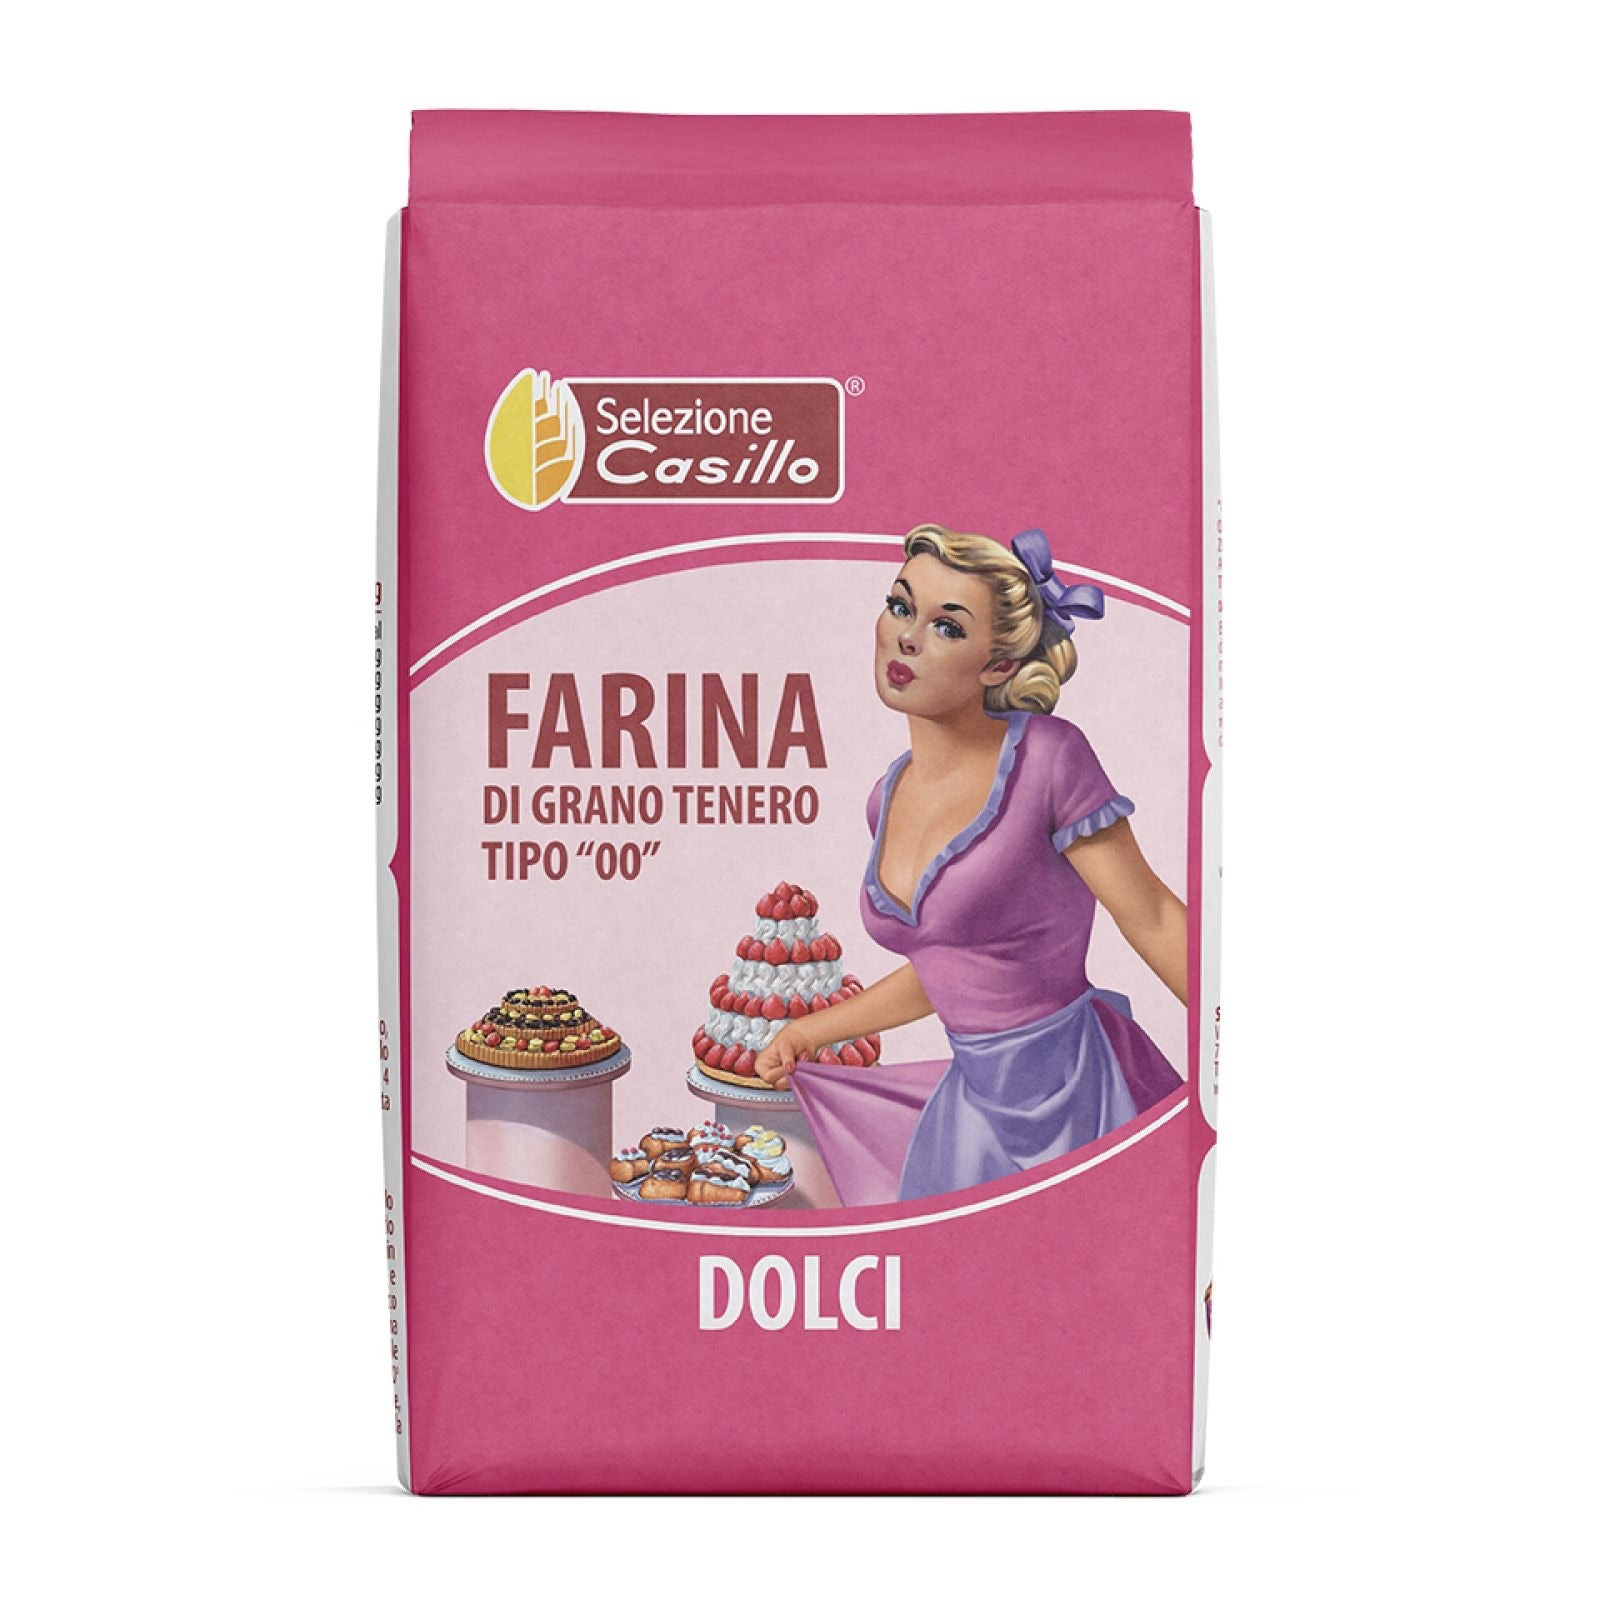 Flour grano tenero for sweets 1 Kg (maximum 3 packs)( Casillo brand)